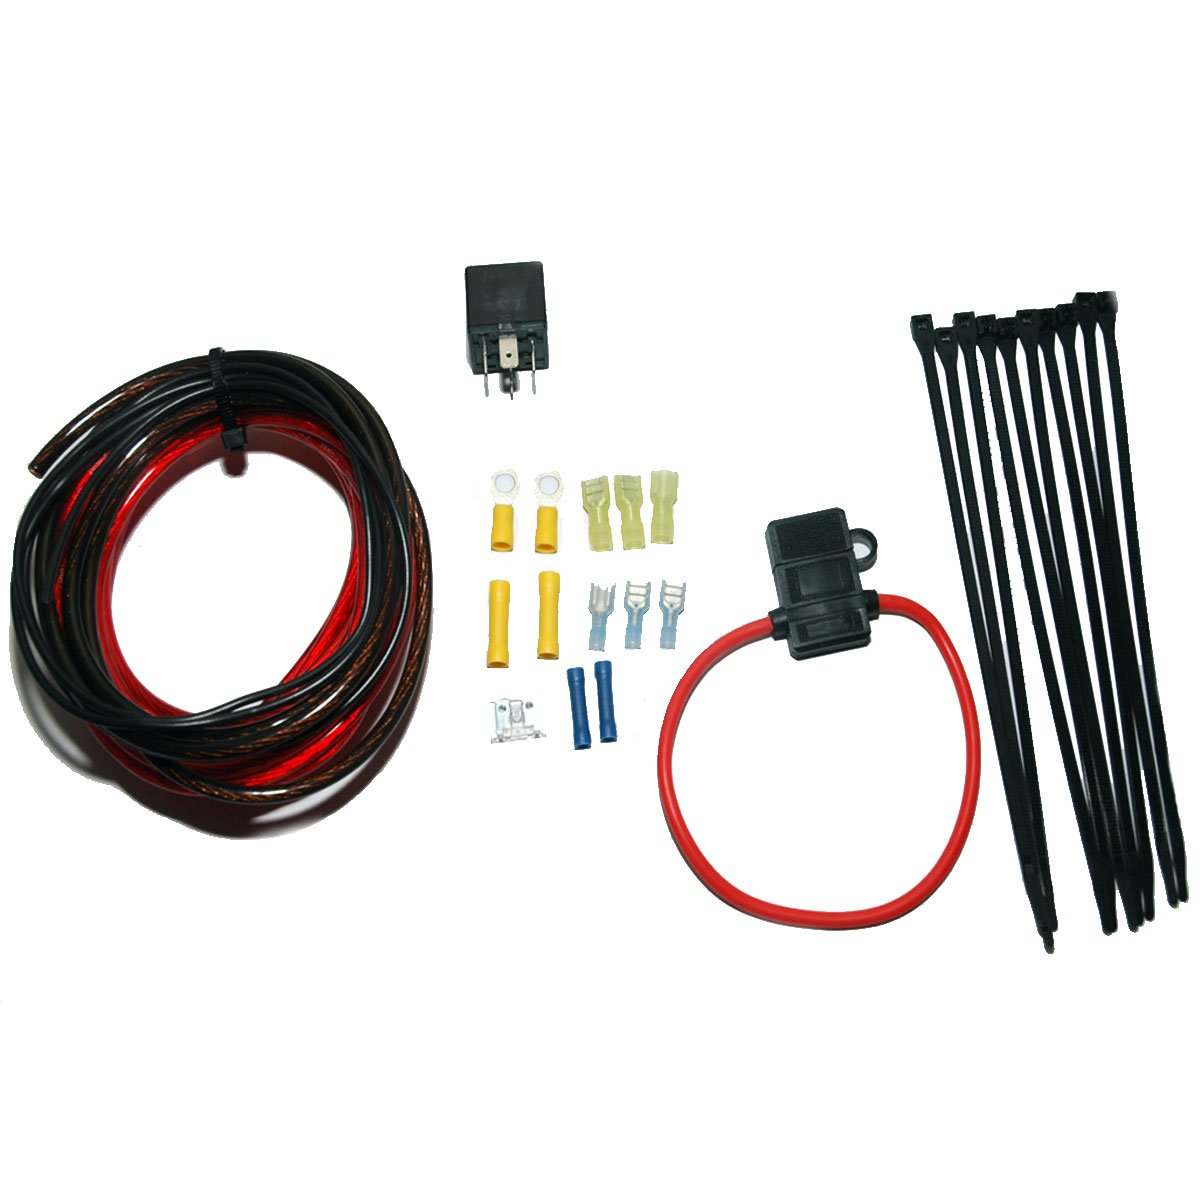 Fuel Pump Wiring Replacement Kit For 2003 05 Dodge Neon Fuse Box Srt 4 Srt4 Automotive